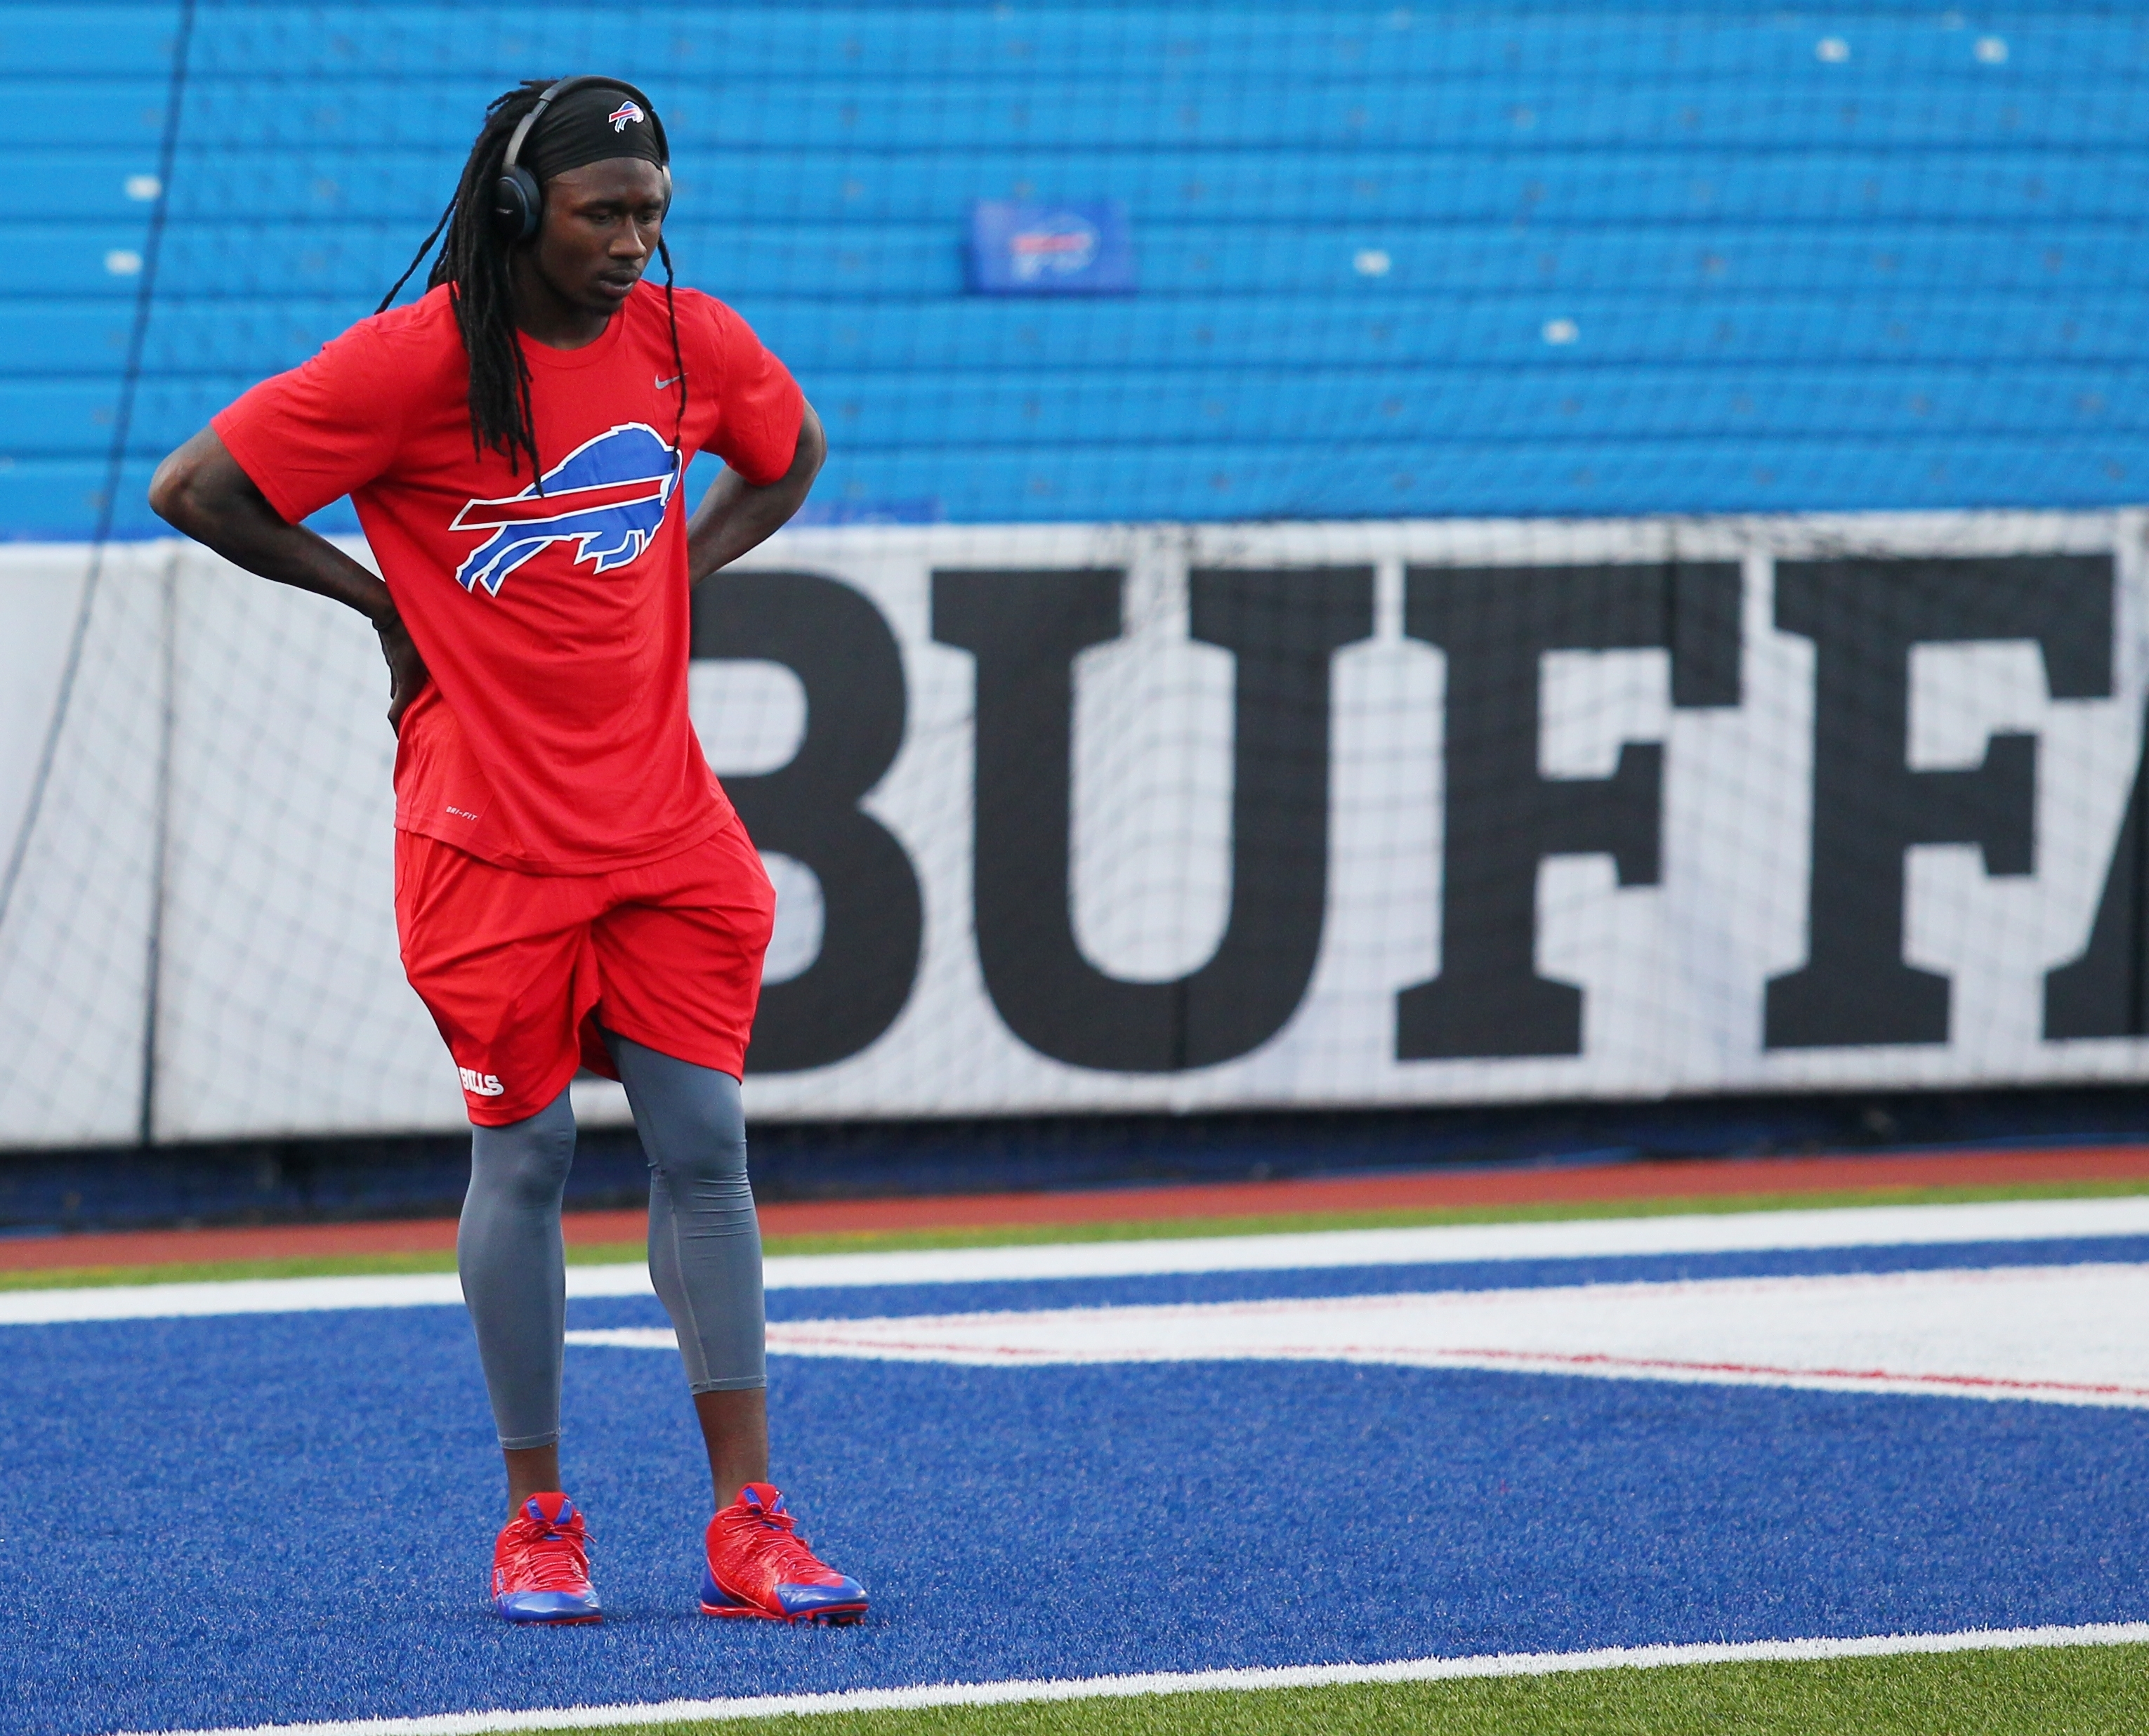 FILE - In this Thursday, Sept. 15, 2016, file photo, Buffalo Bills wide receiver Sammy Watkins warms up before an NFL football game against the New York Jets in Orchard Park, N.Y. Watkins, hampered by foot soreness in recent weeks, is unlikely to play aga